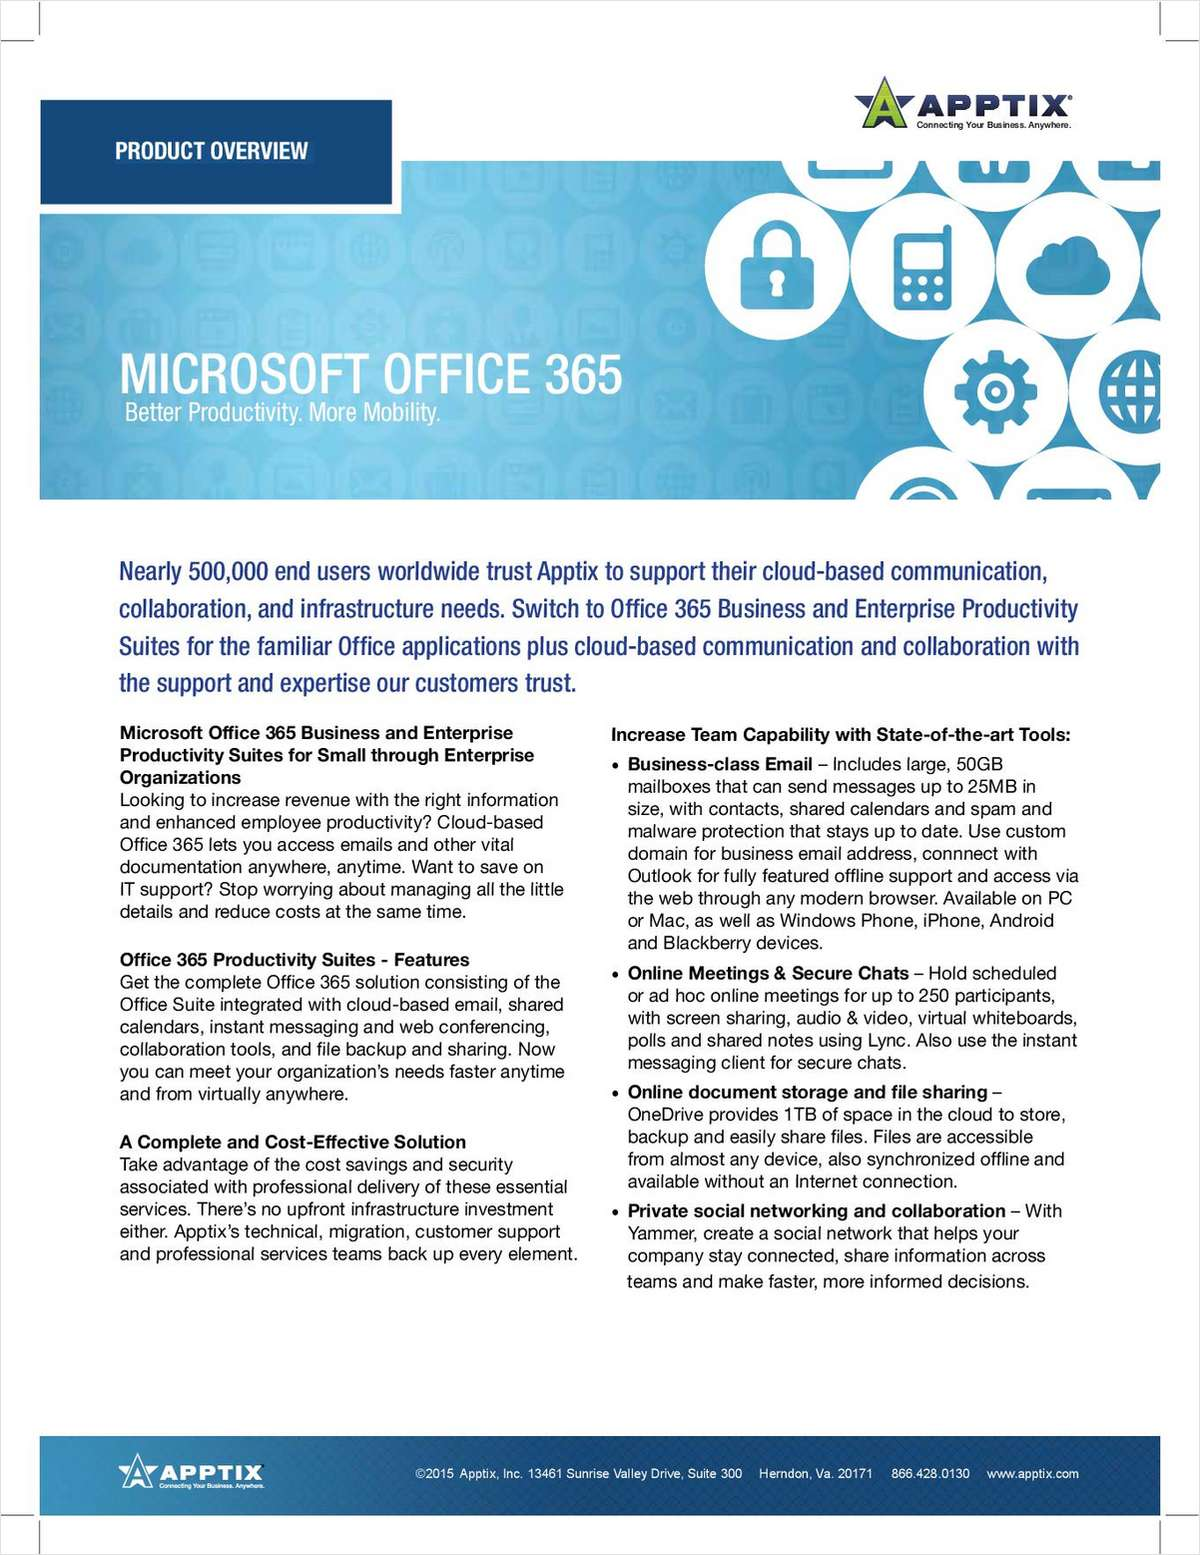 Microsoft Office 365 Business and Enterprise Productivity Suites for Small through Enterprise Organizations